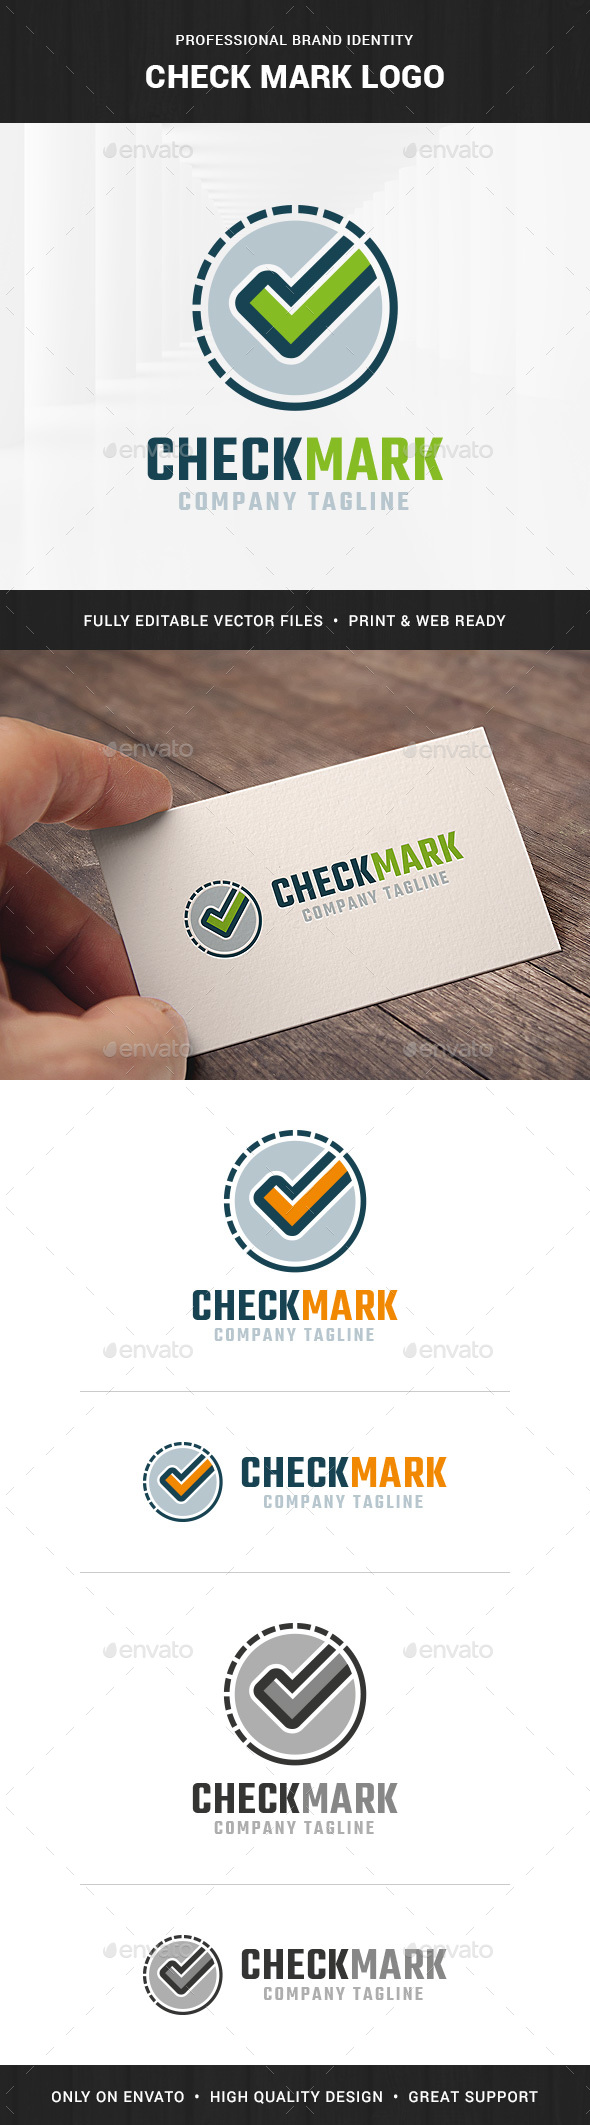 Check Mark Logo Template - Symbols Logo Templates